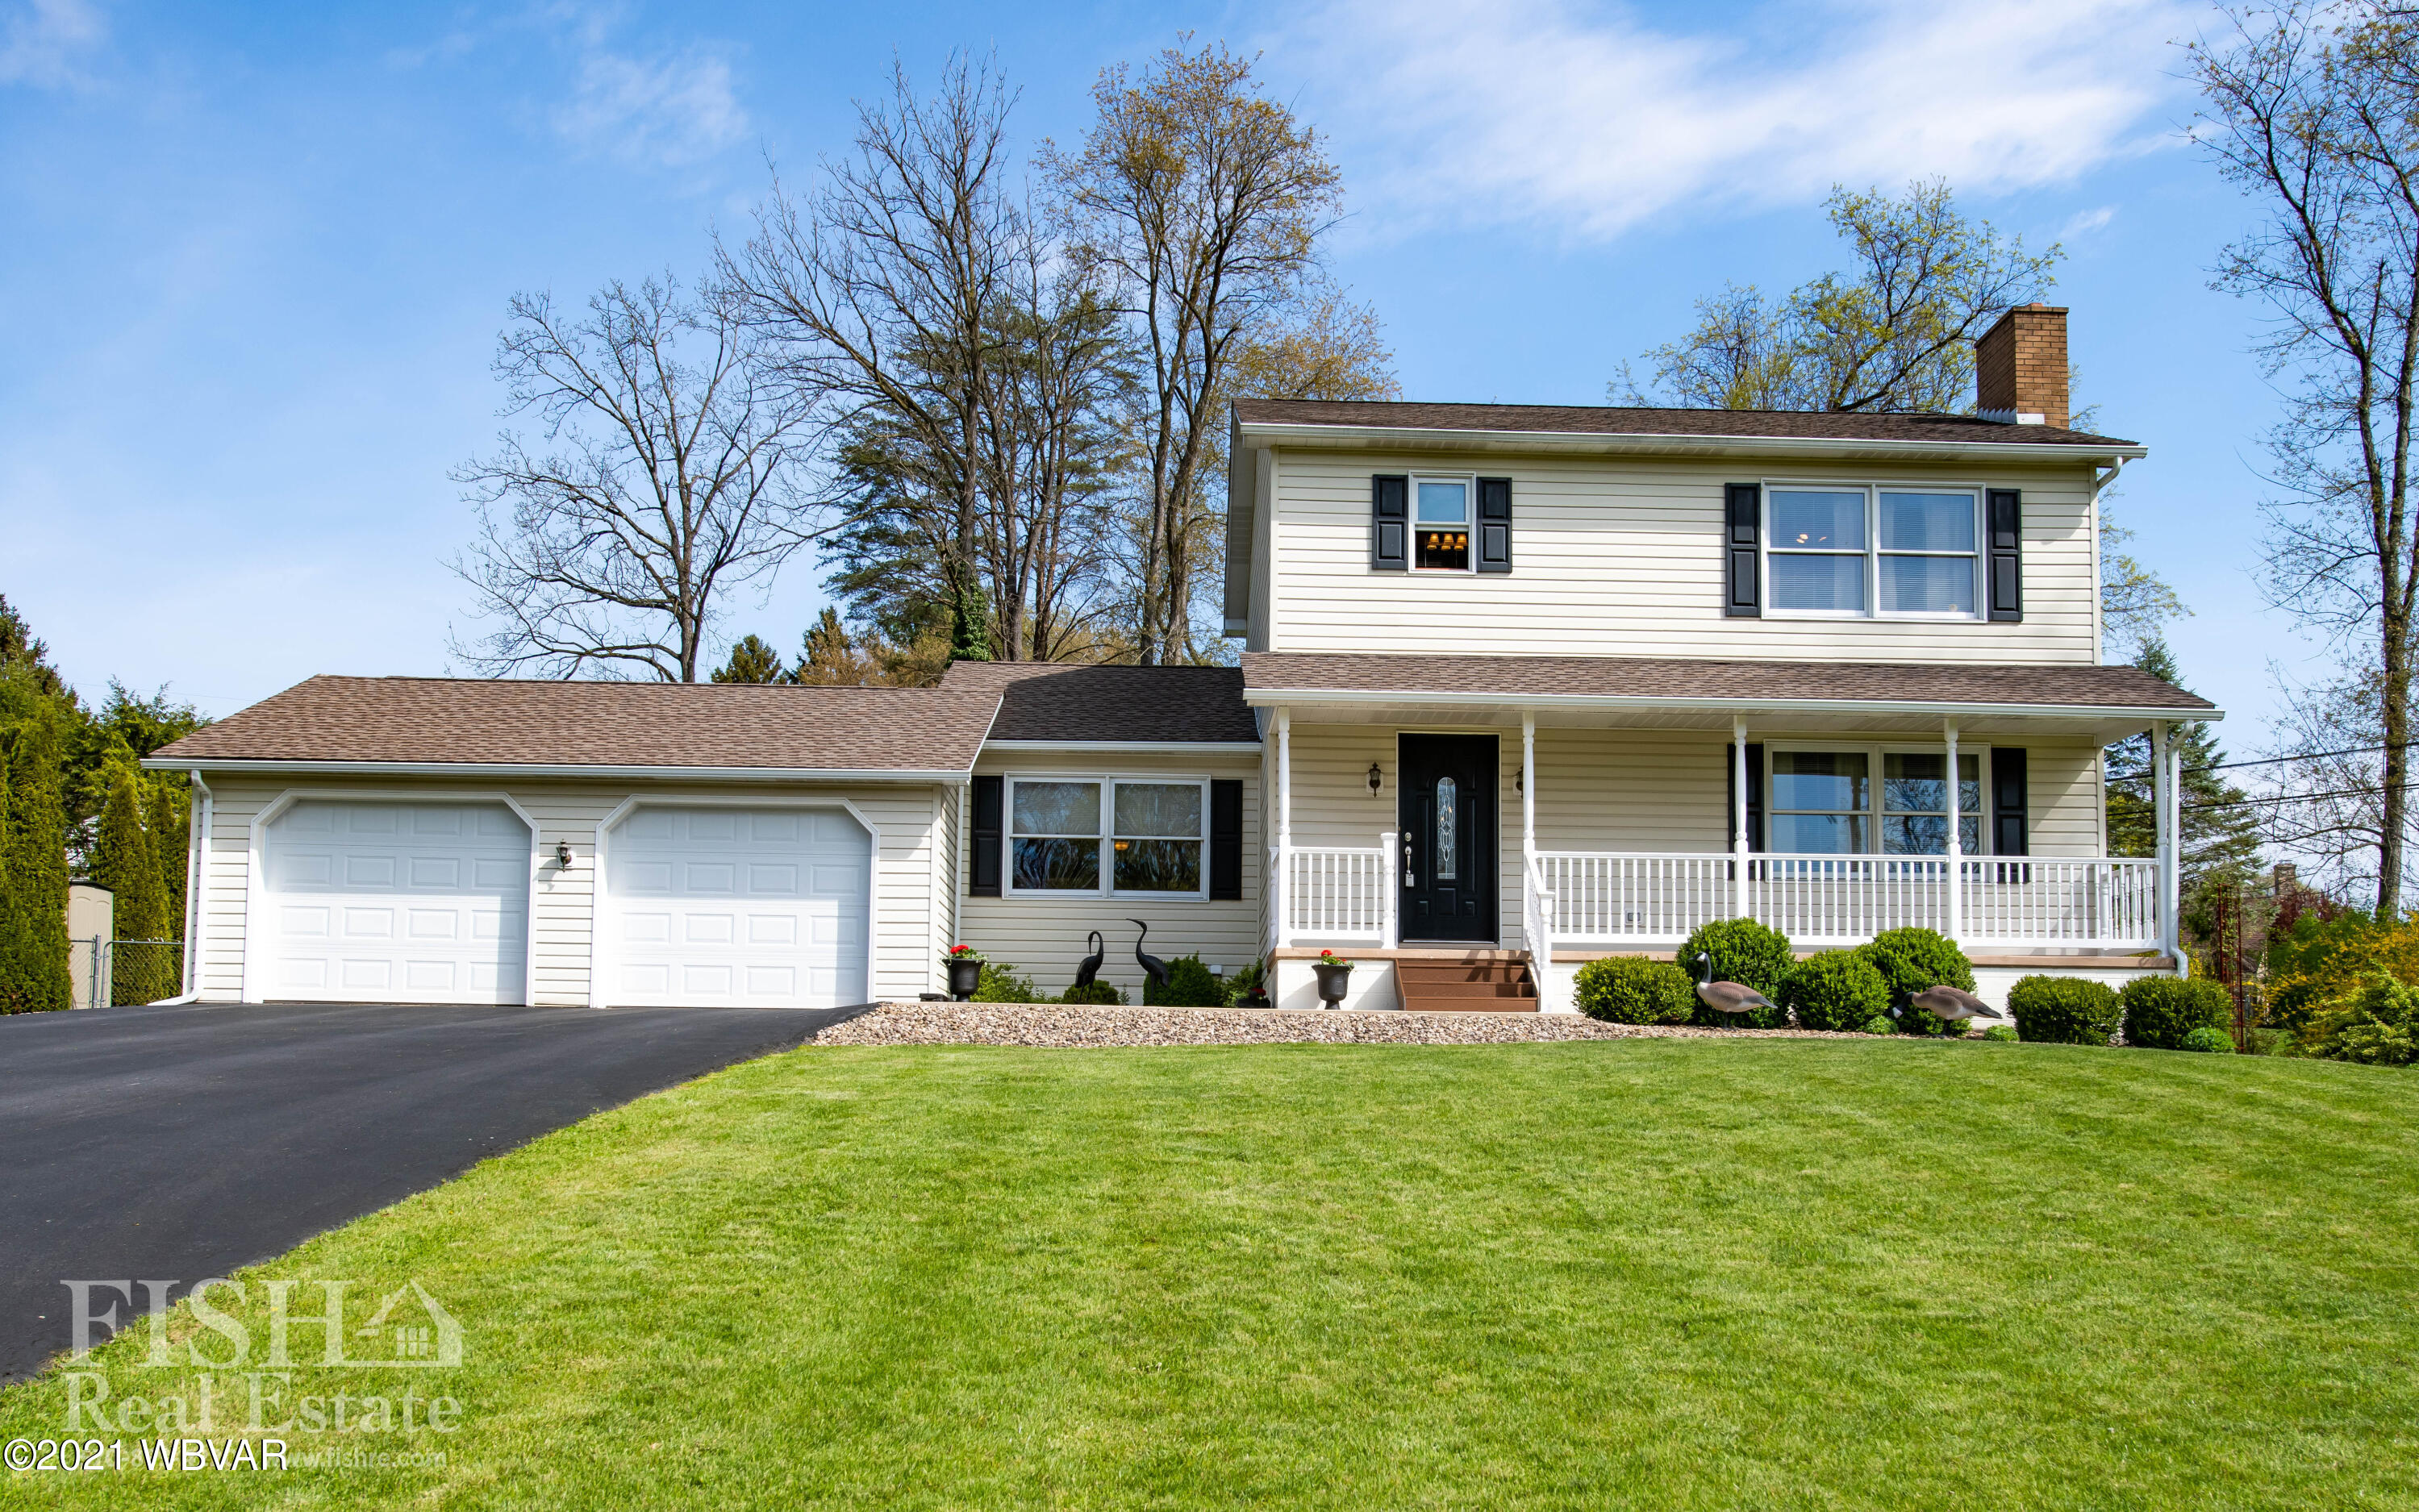 23 SOUTH LANE, Lock Haven, PA 17745, 4 Bedrooms Bedrooms, ,4 BathroomsBathrooms,Residential,For sale,SOUTH,WB-92438